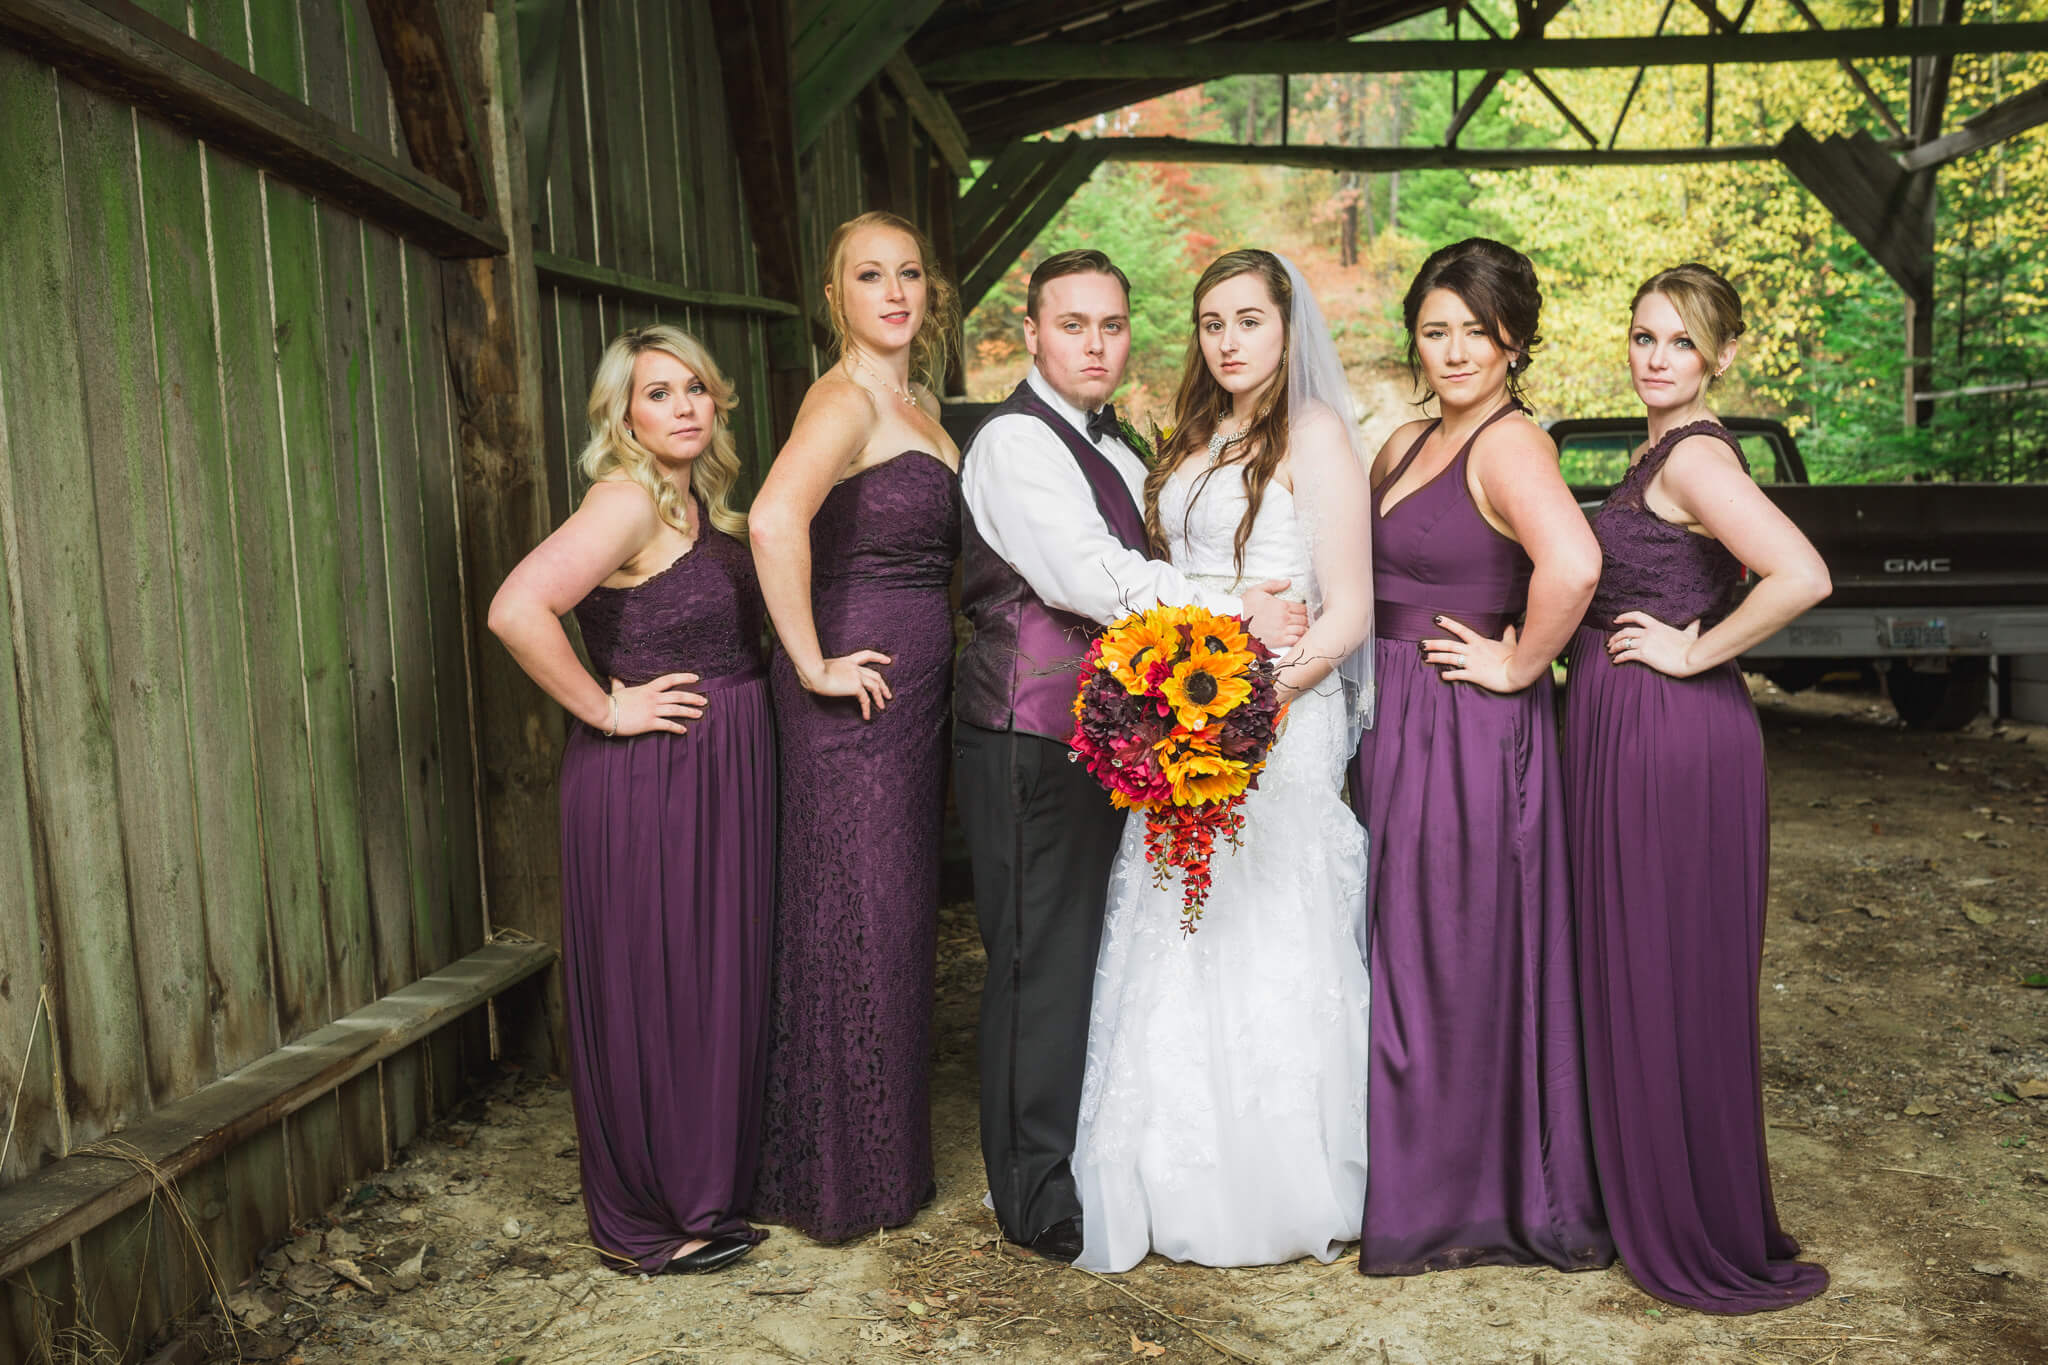 Mitcham's Barn Wedding-113.JPG